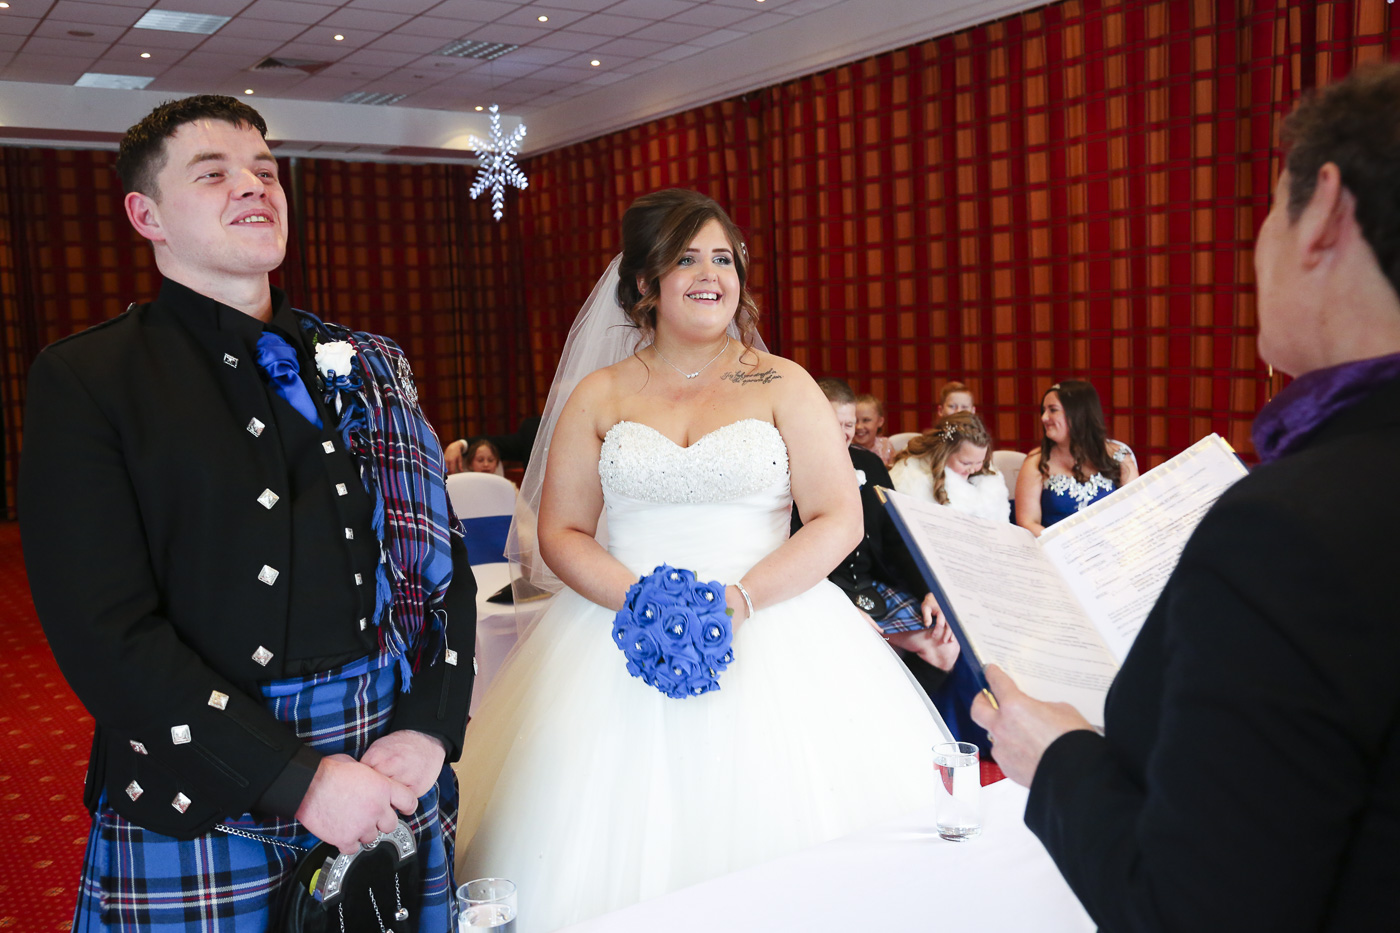 wedding-photography-at-the-hilton-coylumbridge-aviemore-7817